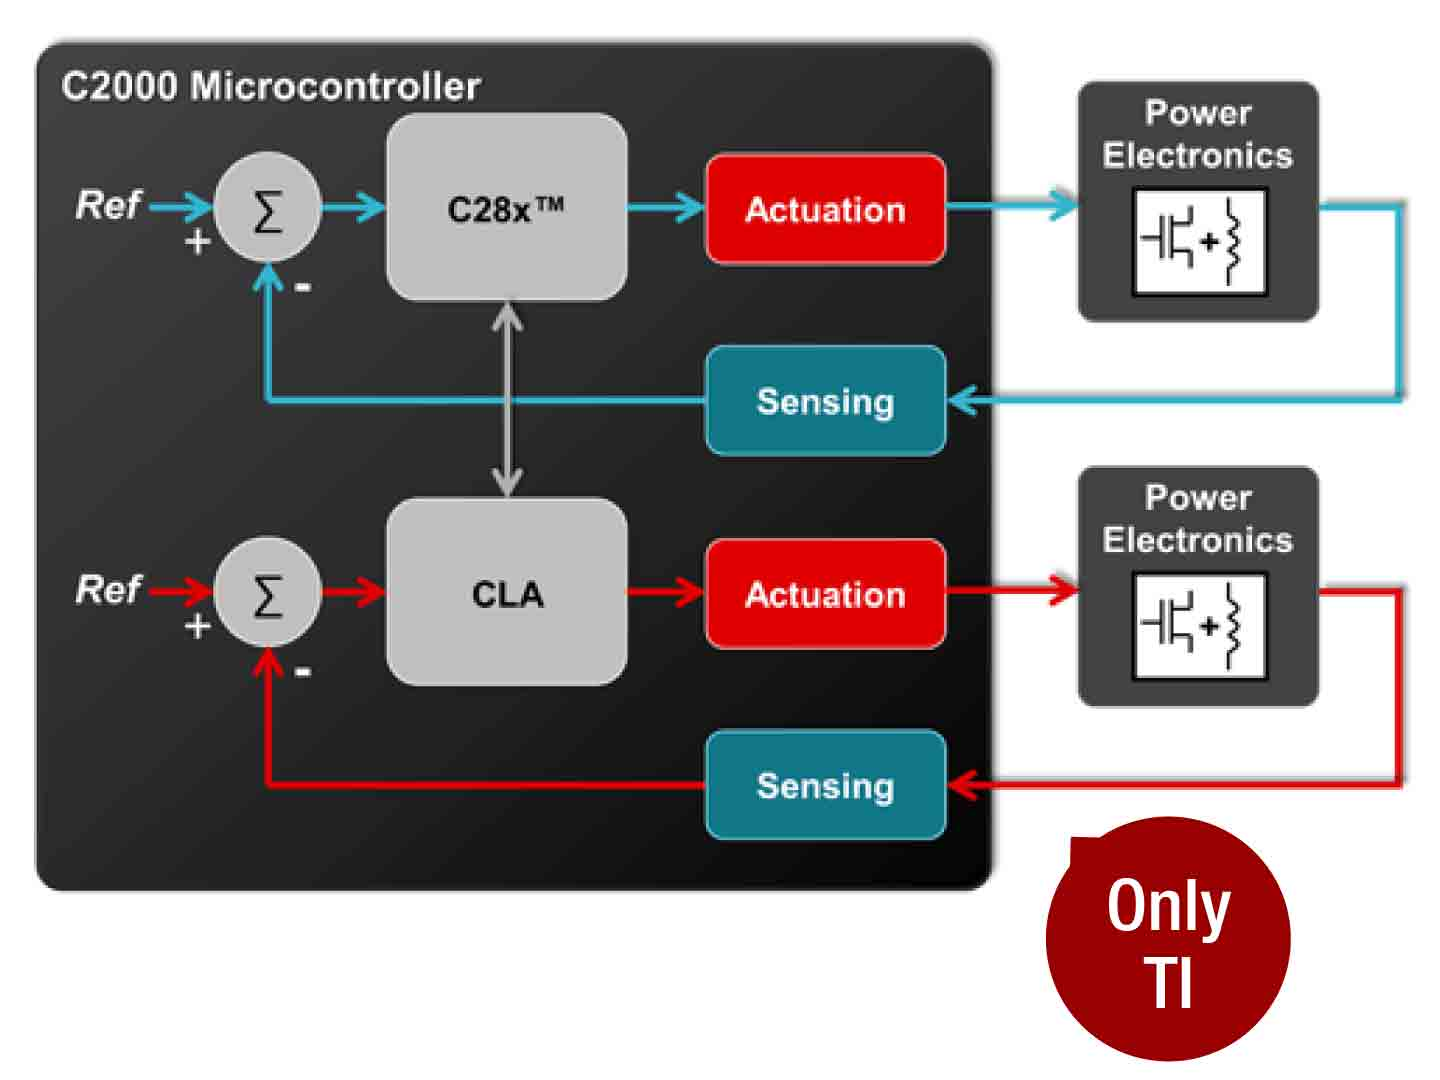 CLA real-time co-processor